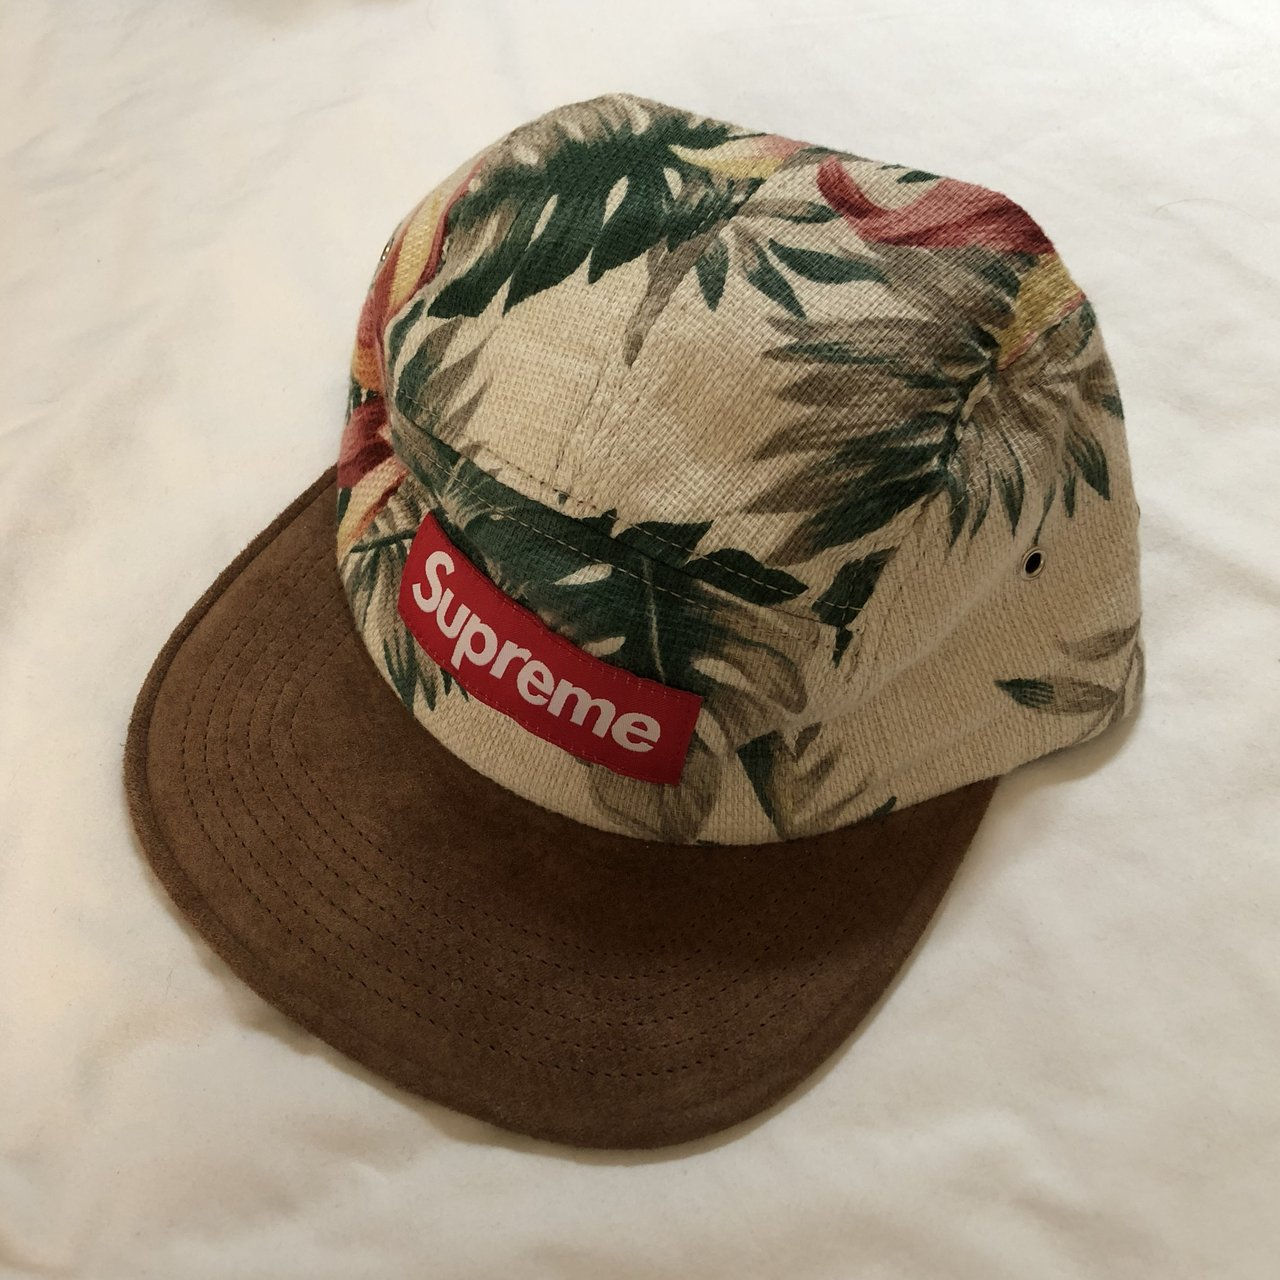 SUPREME FLORAL CAMP CAP HAT WHITE CREAM. WORN ONCE AUTHENTIC - Depop 2fb03020211